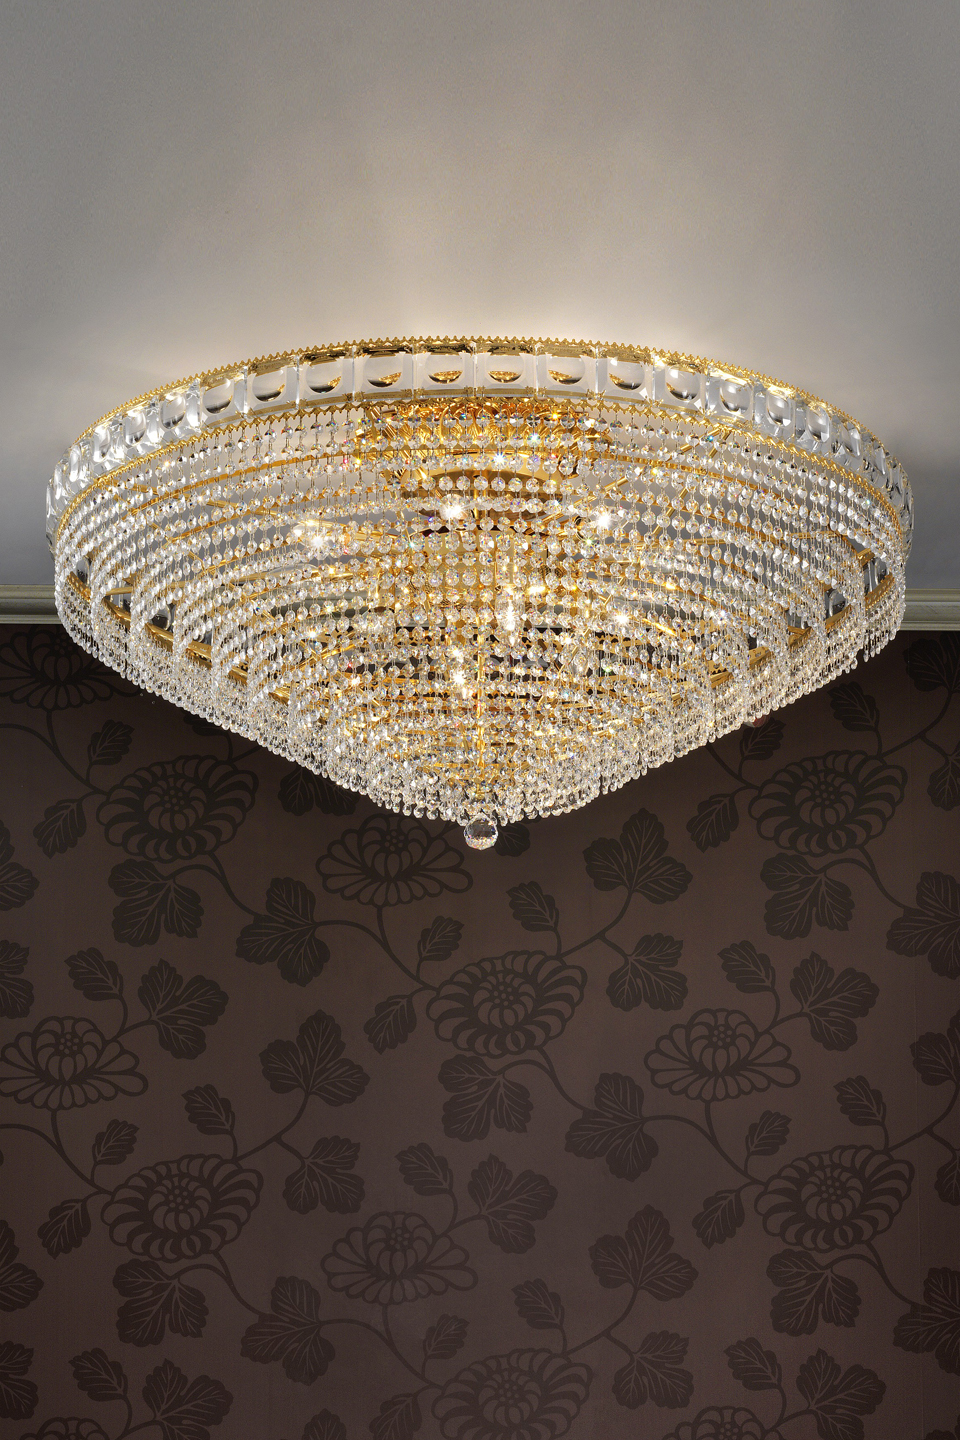 Ceiling Lamp 12 Lights Gold And Crystal